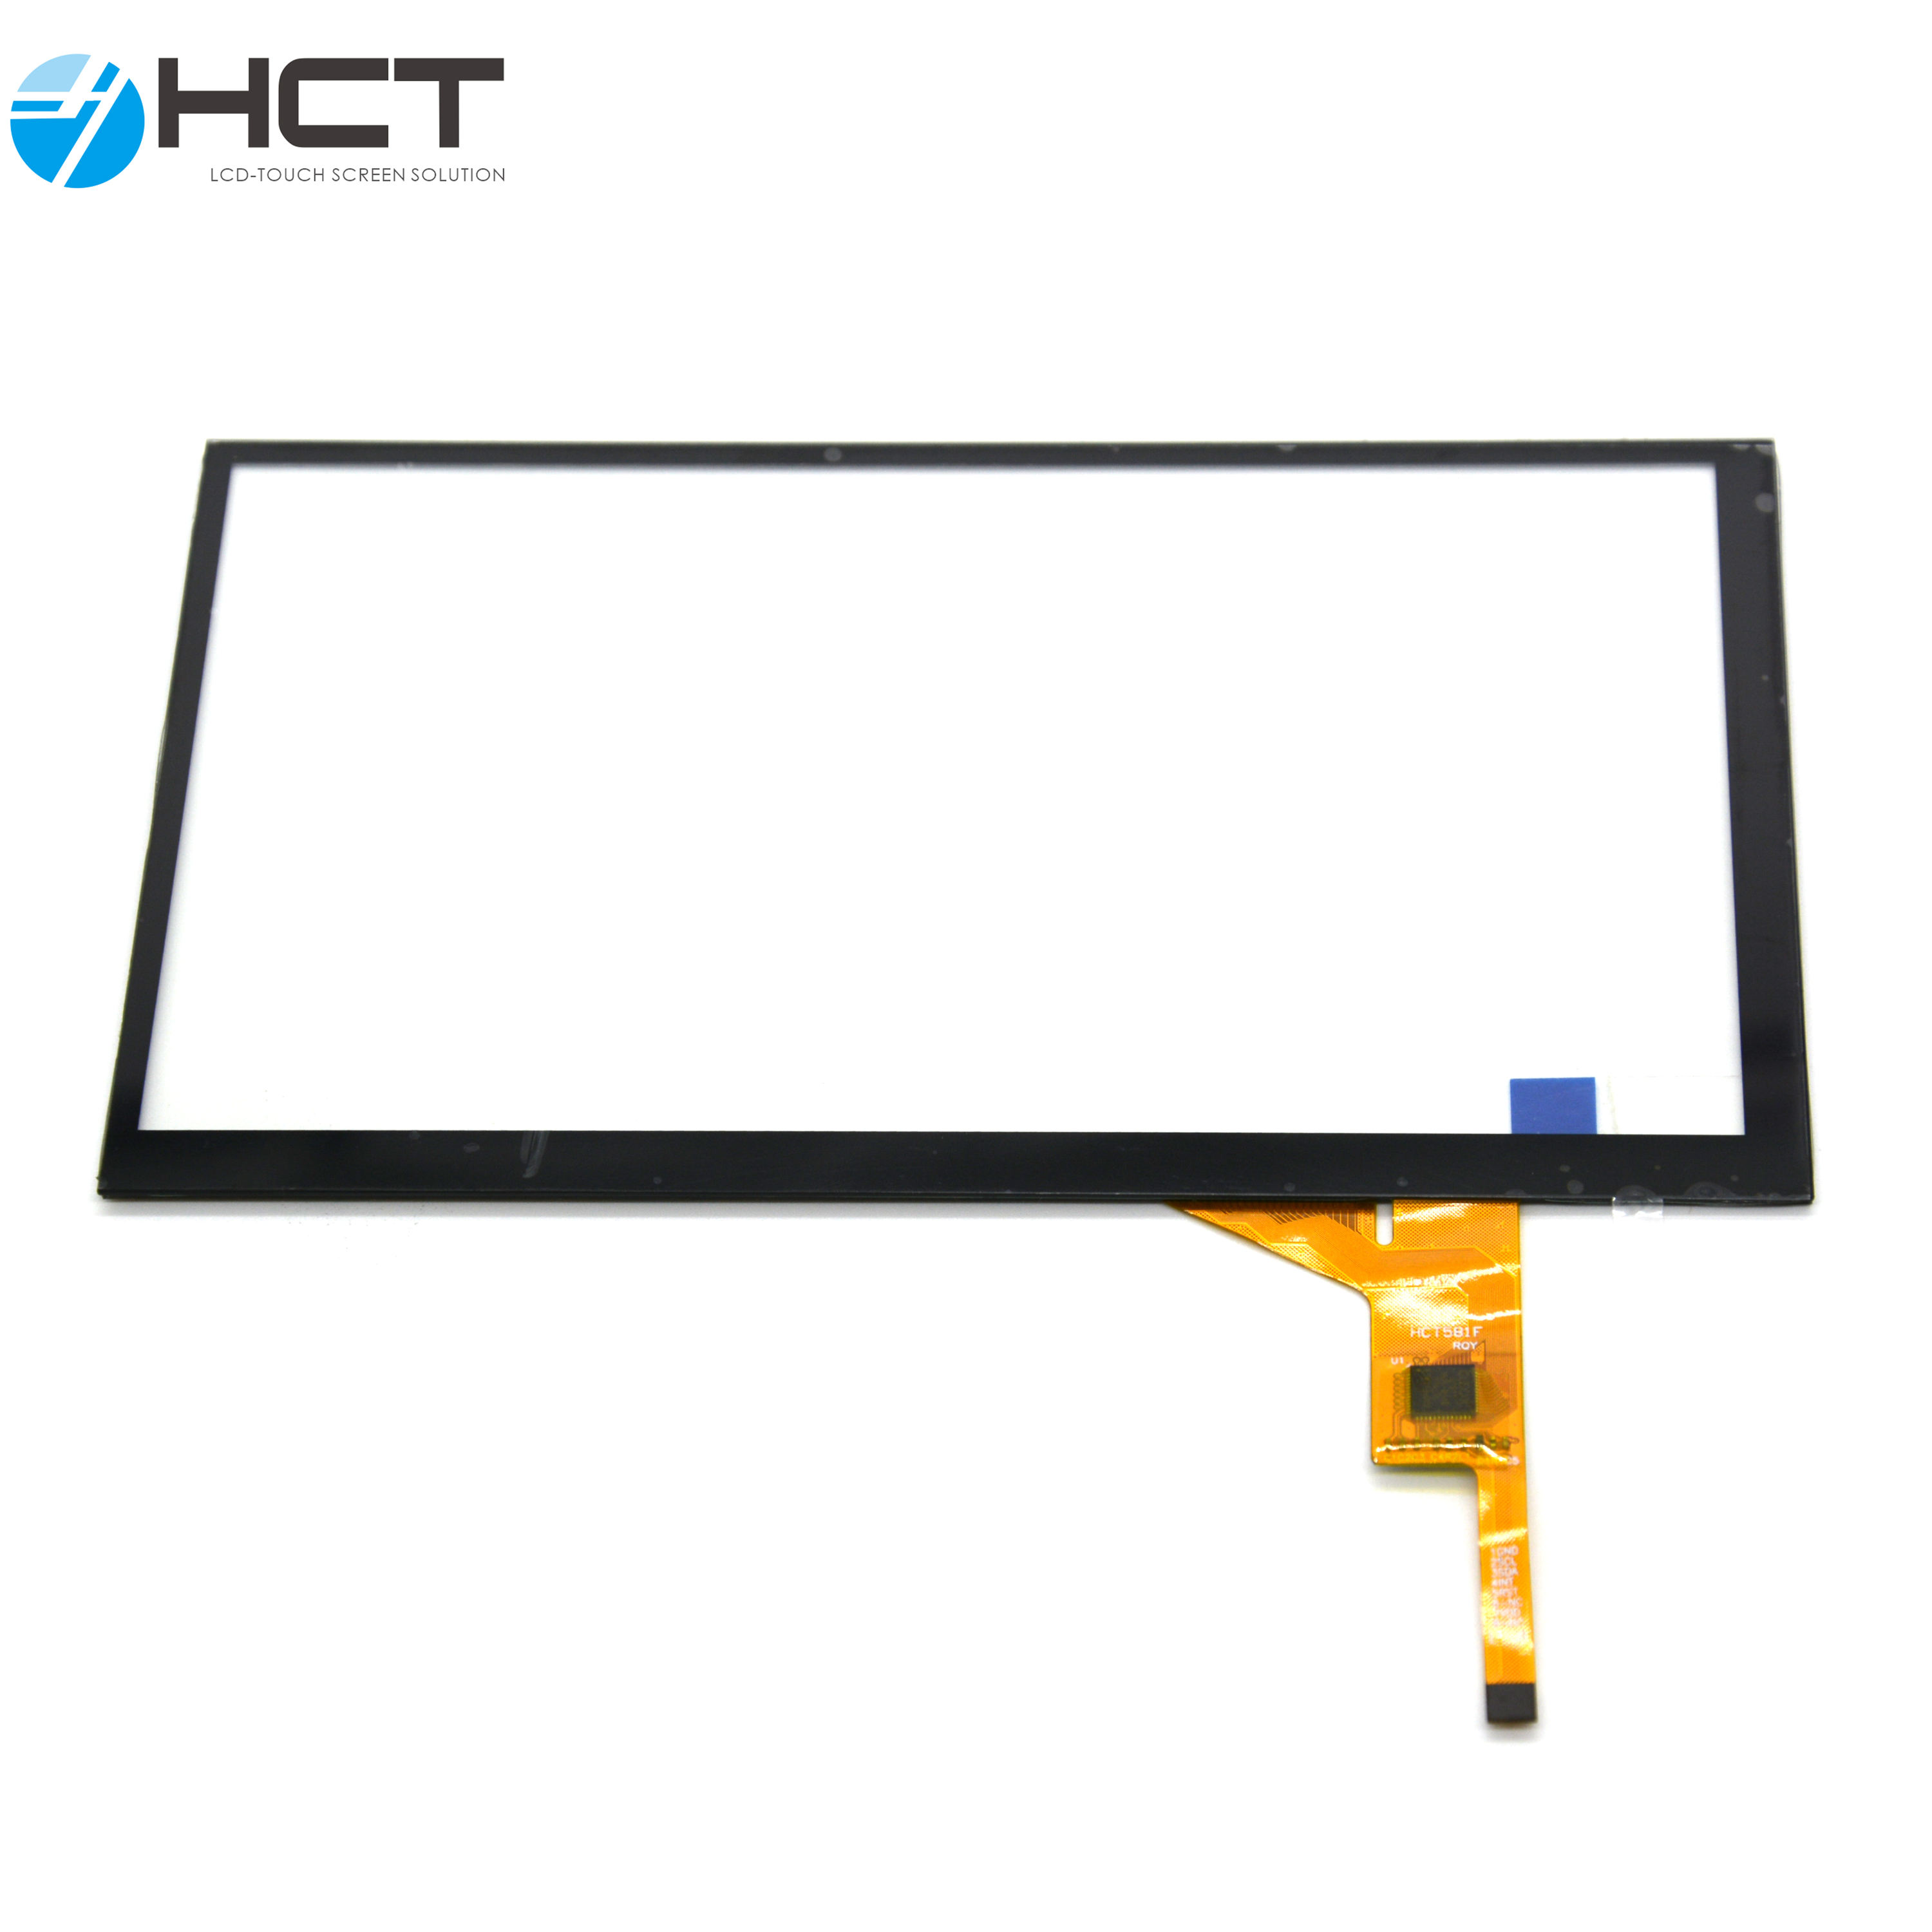 2018 best selling 6.5 inch touch screen